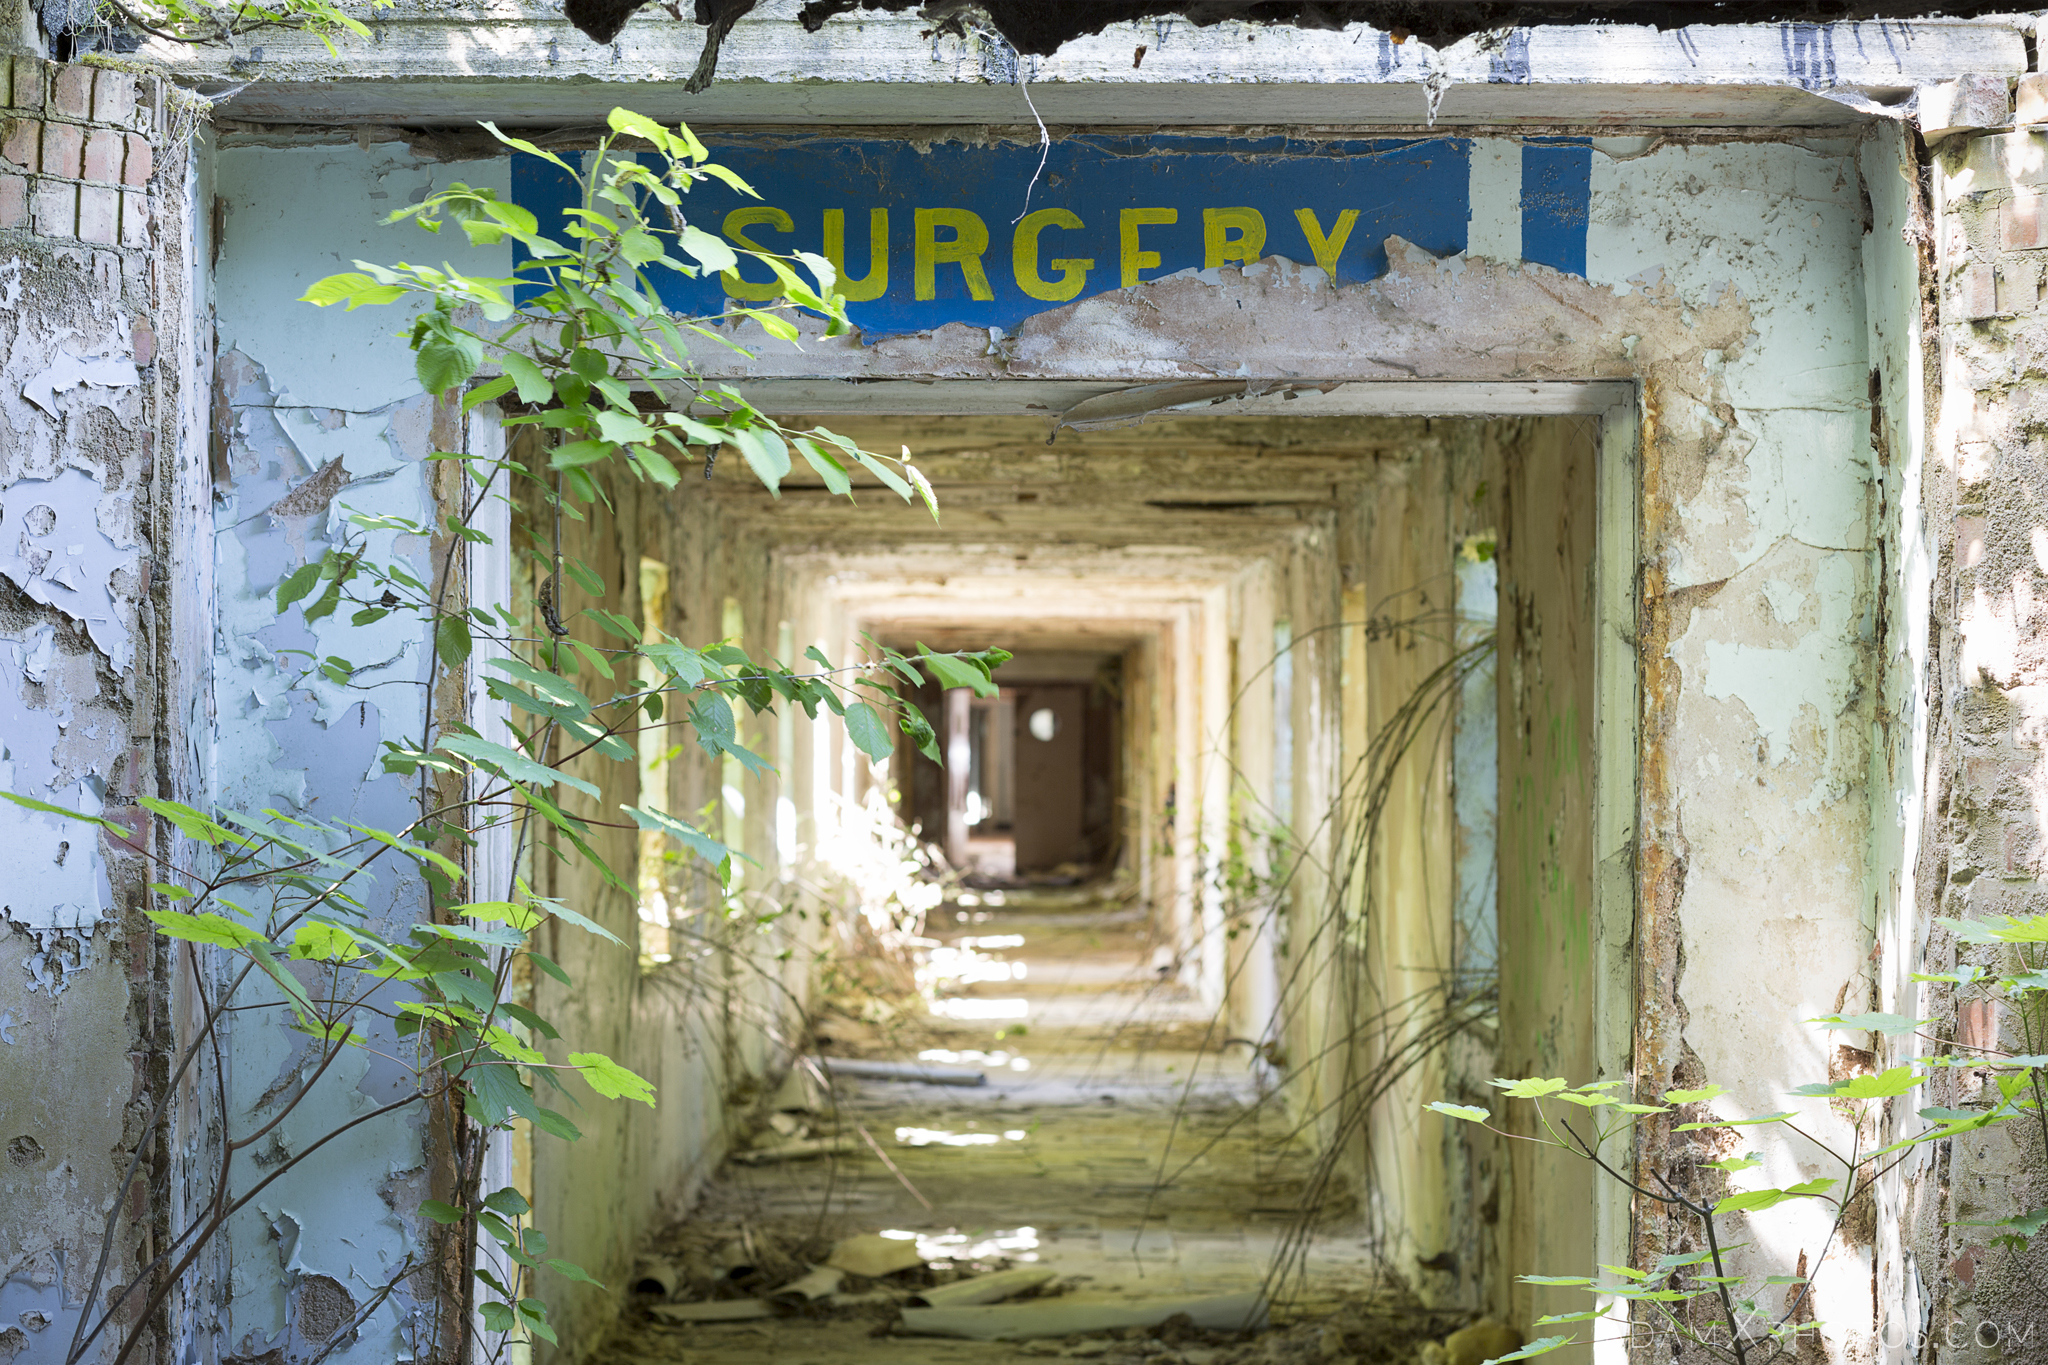 Surgery long corridor overgrown Nocton Hall RAF Hospital Lincolnshire Adam X Urbex Urban Exploration Access 2018 Abandoned decay lost forgotten derelict location creepy haunting eerie